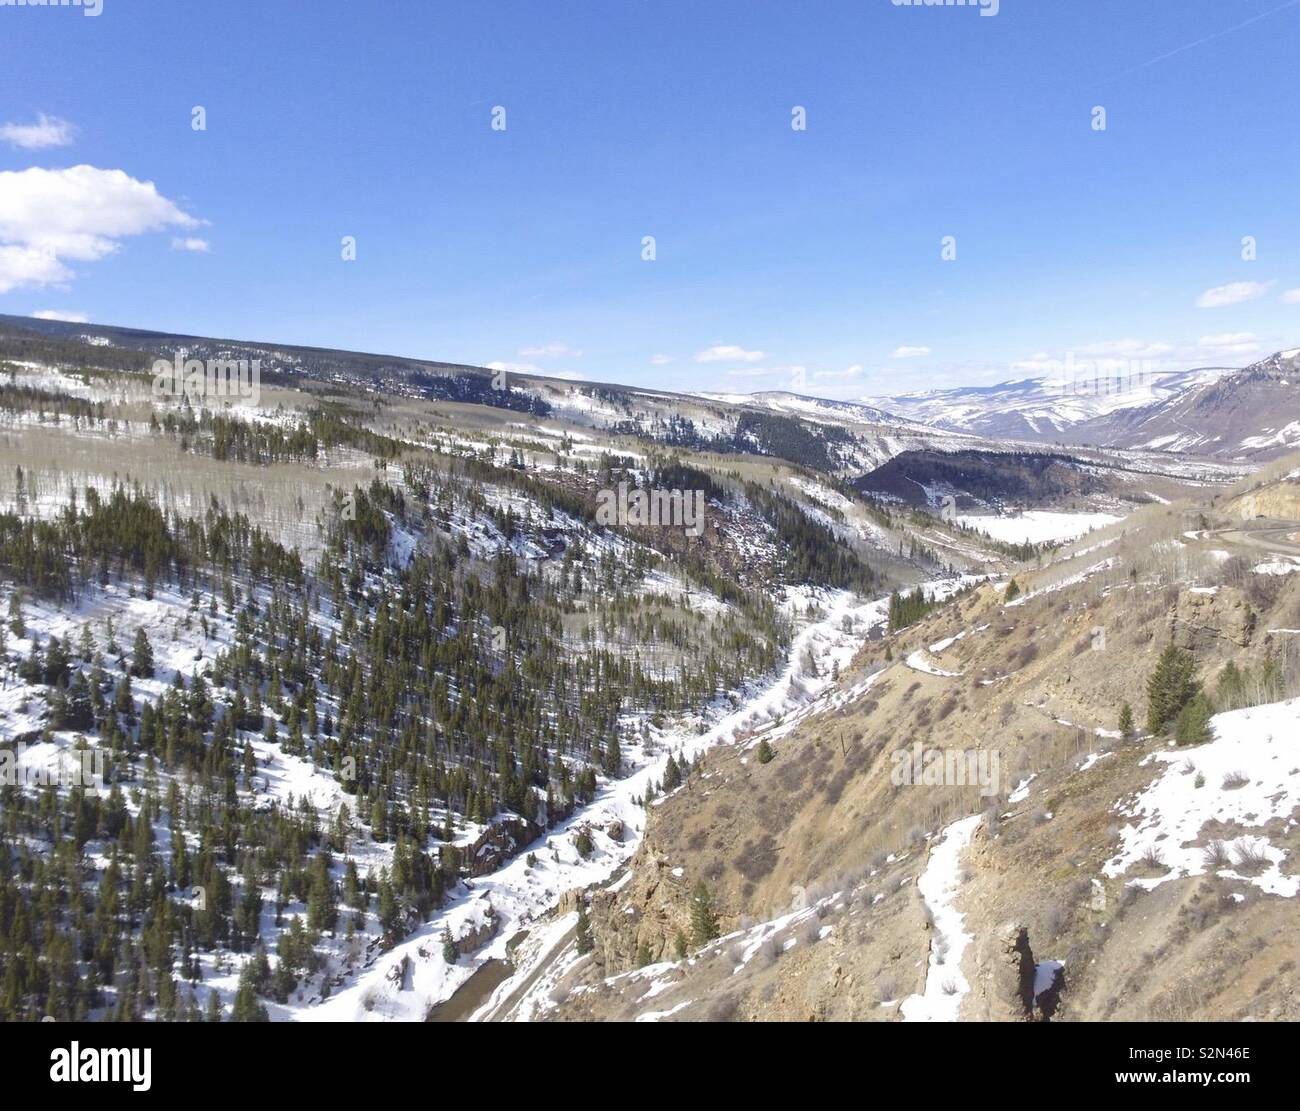 A beautiful drone picture of a valley in the Rocky Mountains. - Stock Image